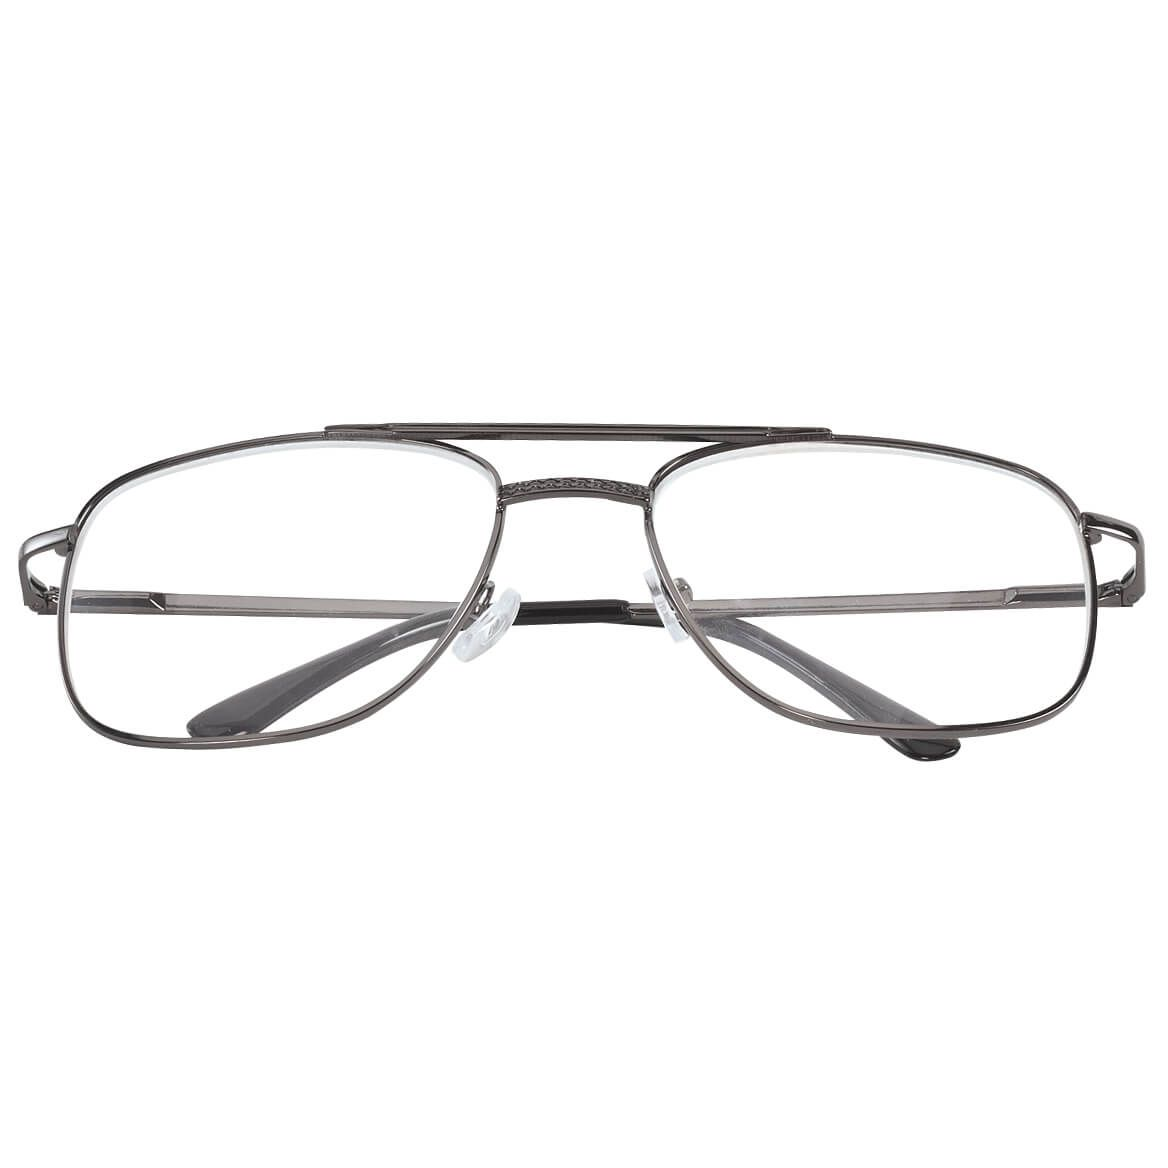 3 Pack Pilot Readers with Spring Hinge-344795